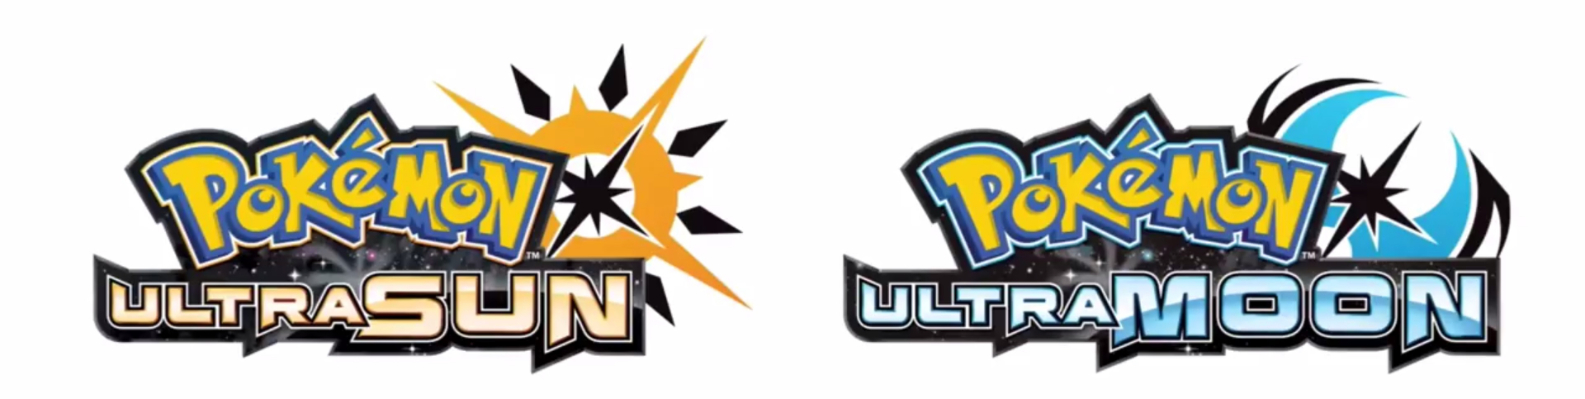 ultra sun or moon